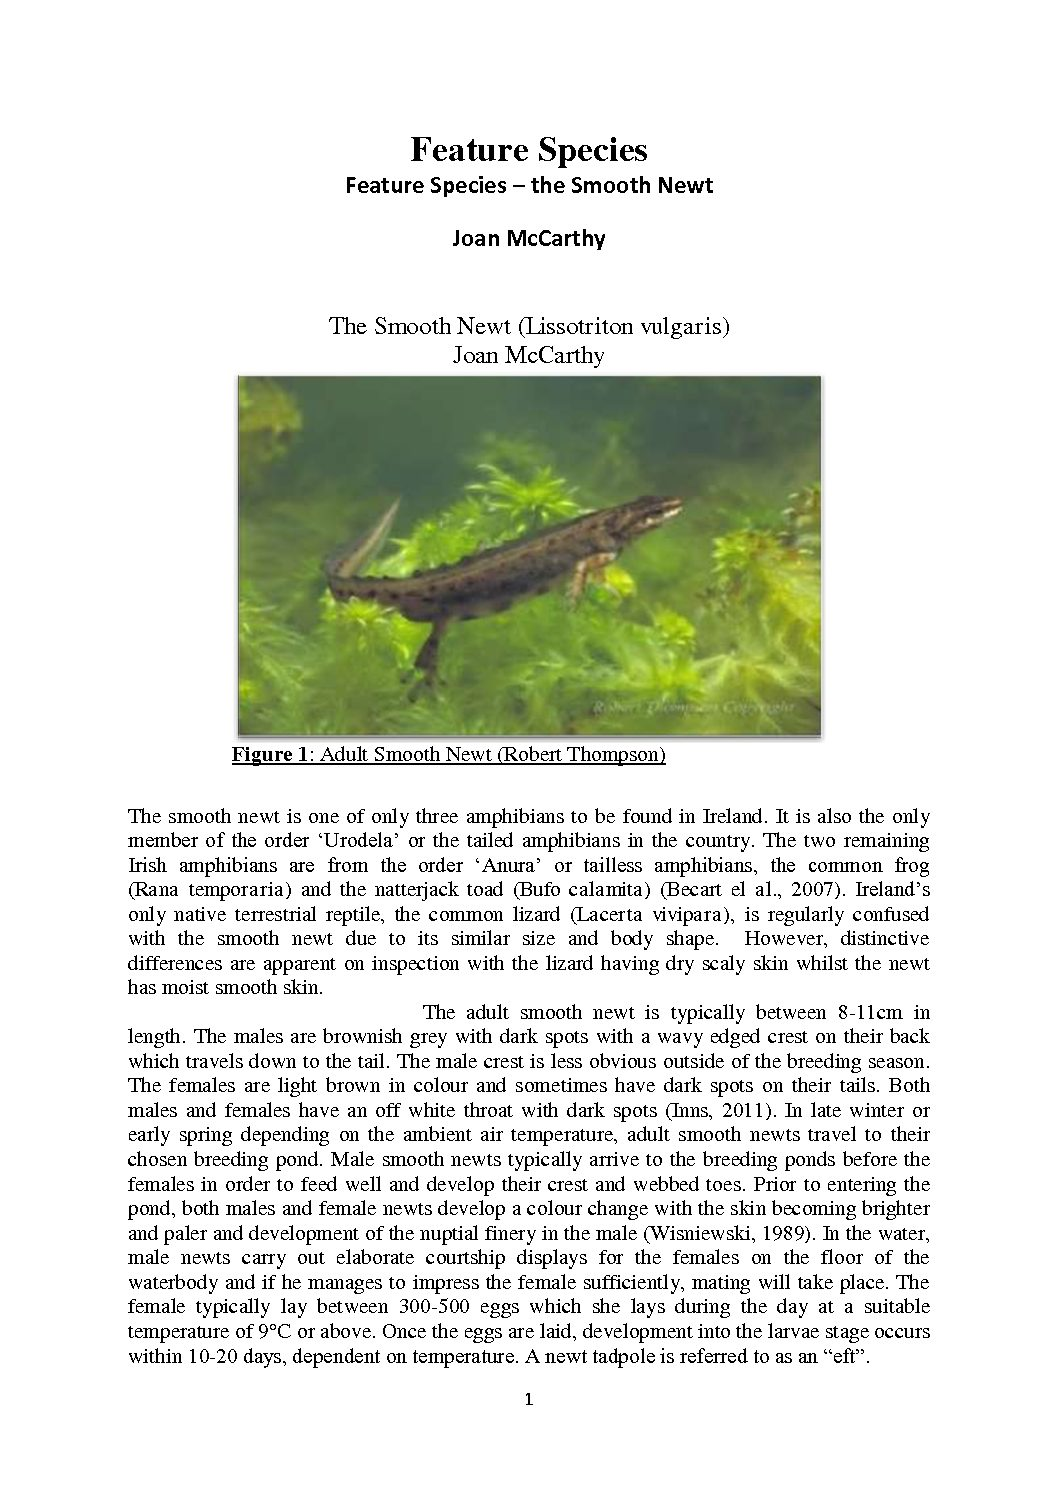 The Smooth Newt by Joan McCarthy